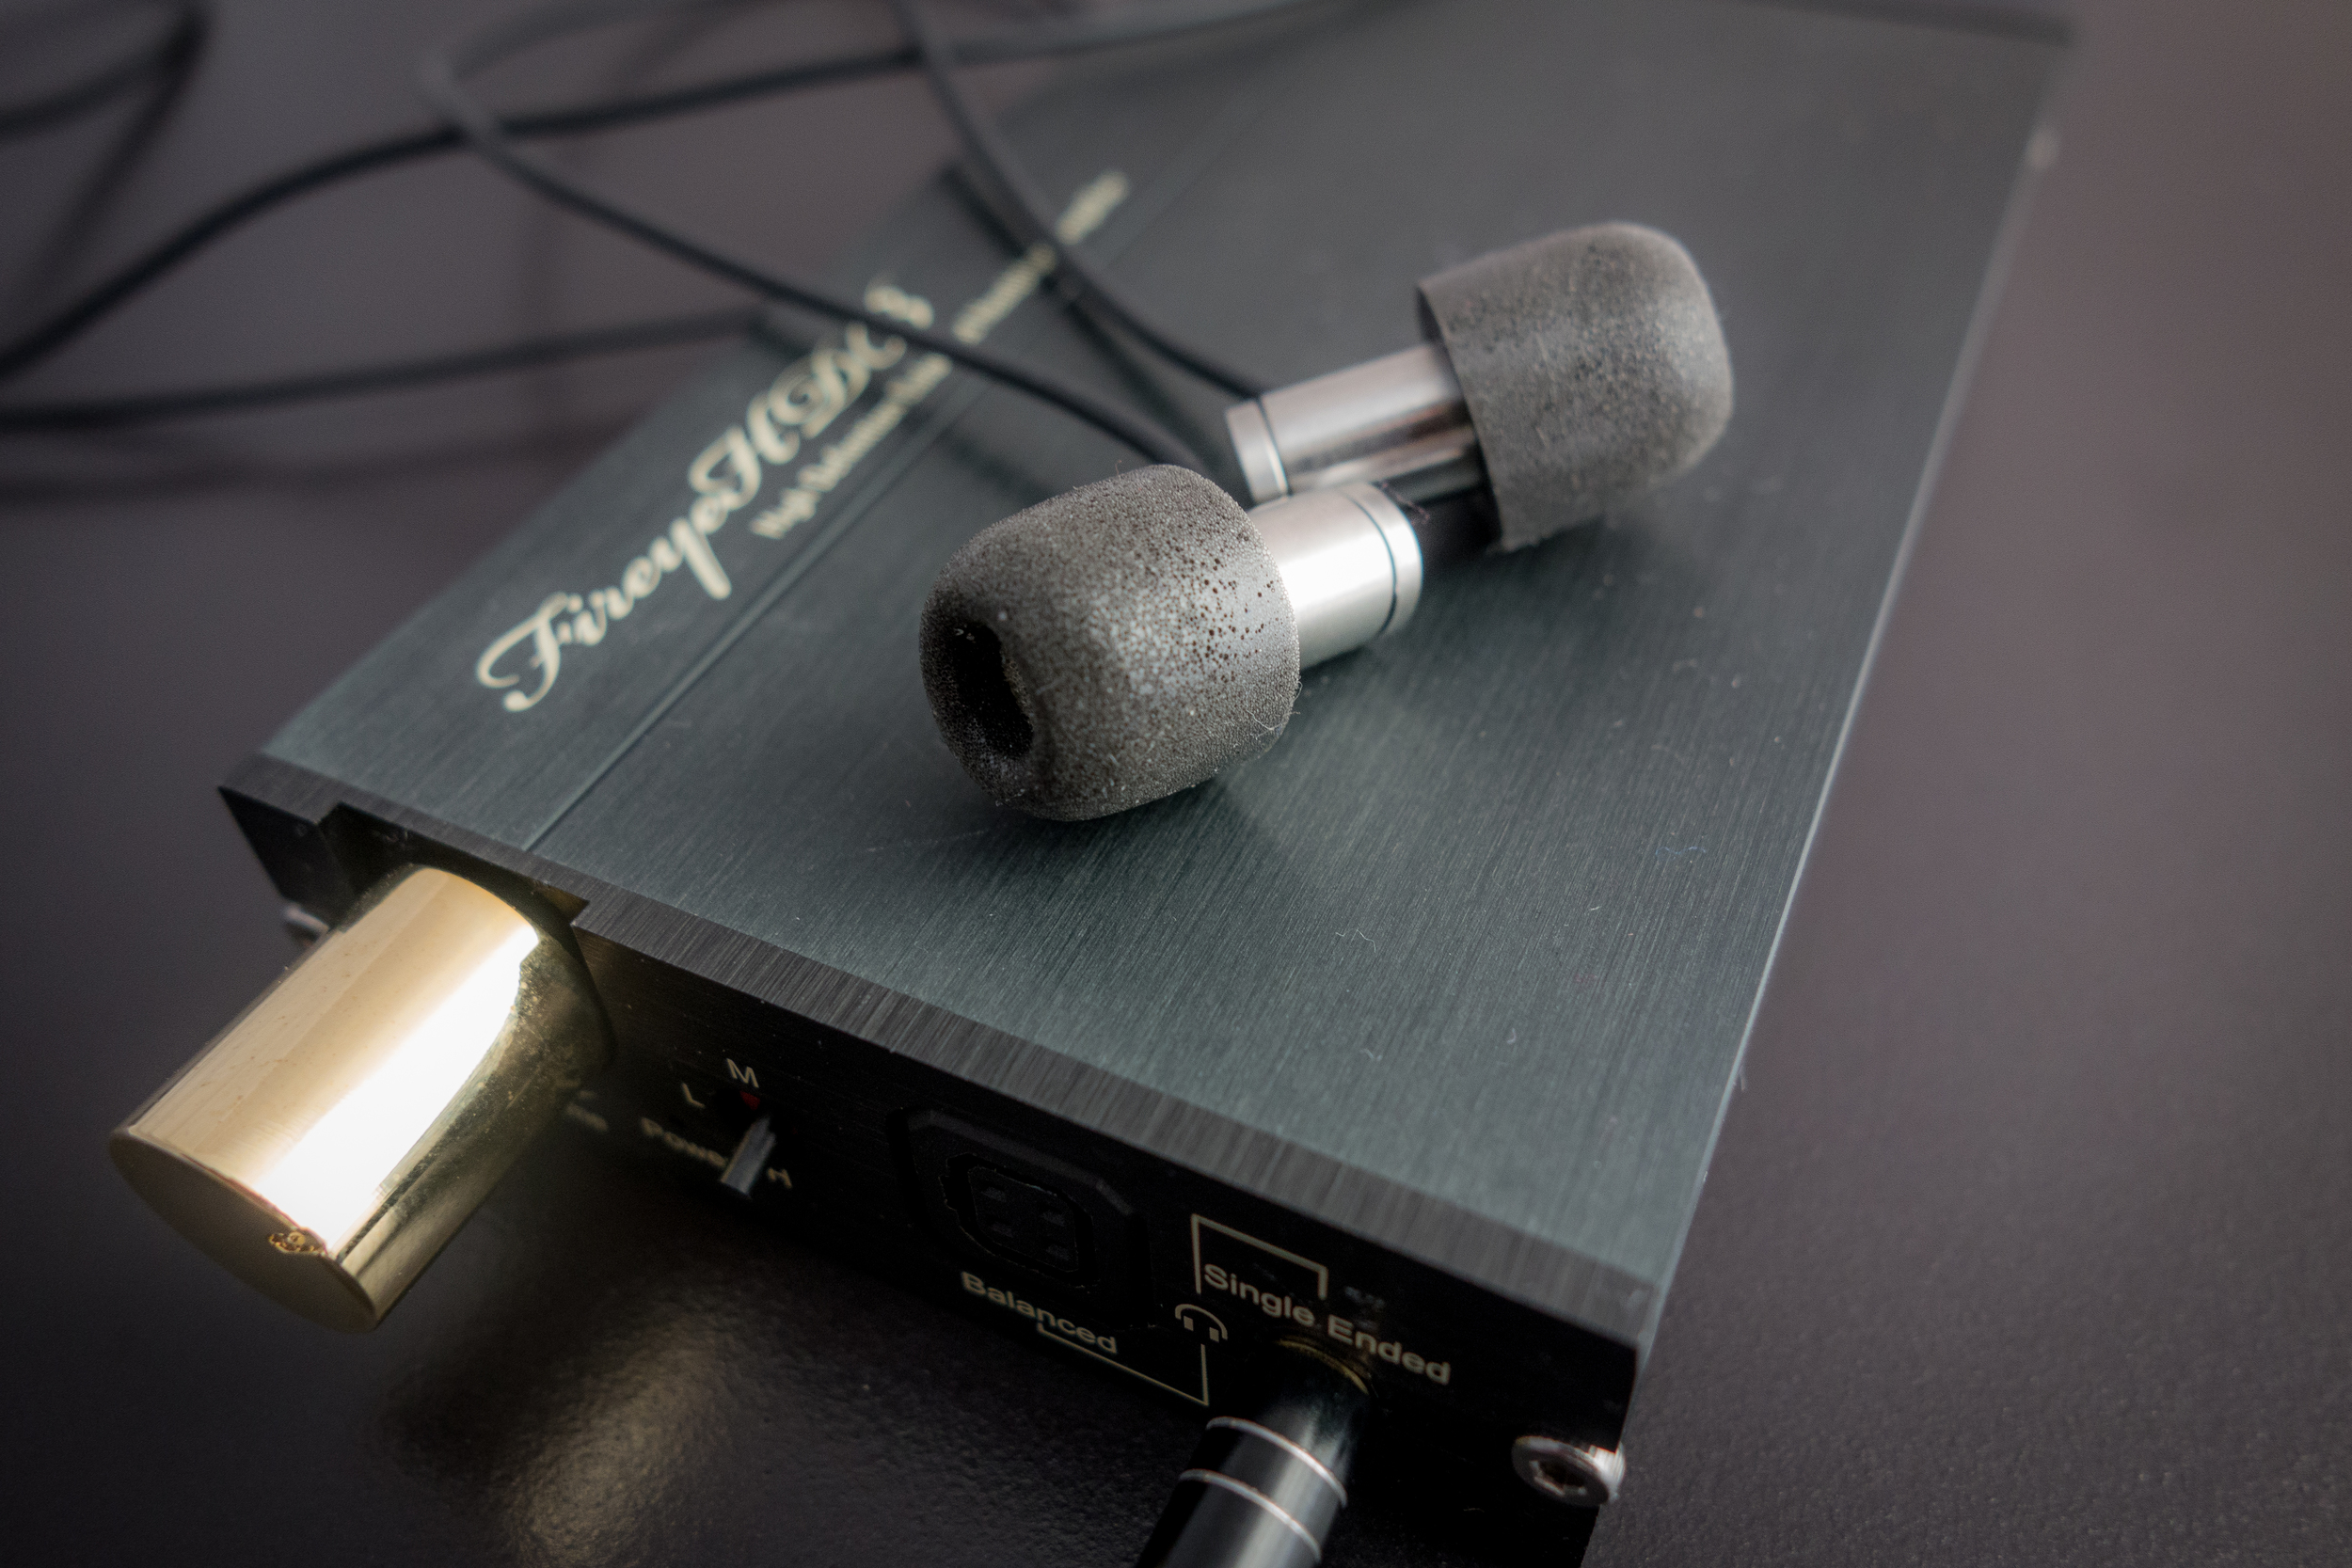 Flare R2Pro earphones paired with the Firestone Fireye HDB+ Headphone Amp. The Flare Audio Earphones produced some excellent sound in our review.